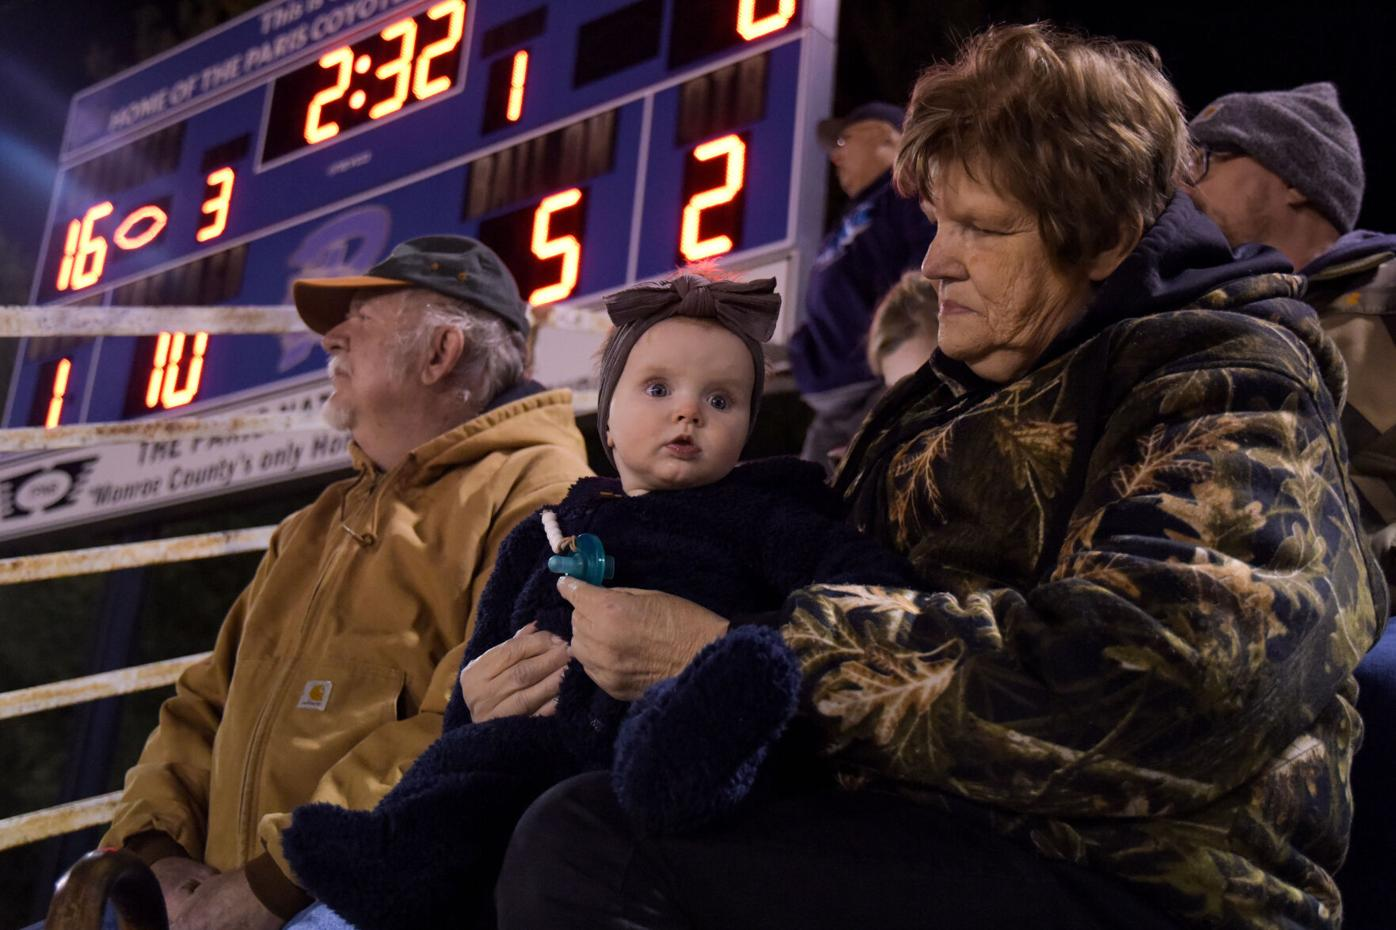 Josephine Schulte, 7 months, bundles up for the cold with her grandparents